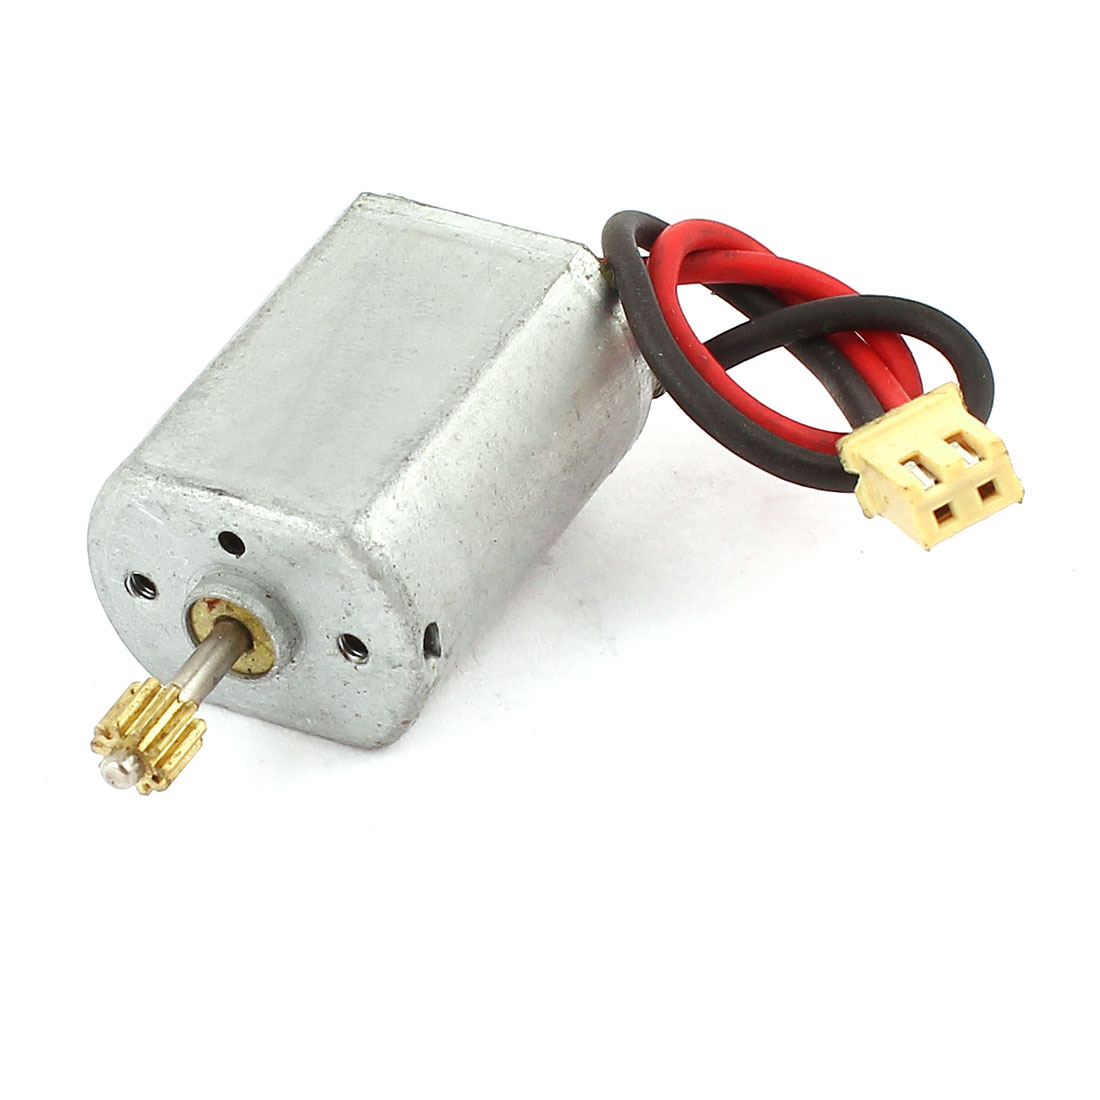 SY 8088 34/35 Remote Control Airplane Spare Parts DC 3.7V 45000RPM Rear Motor